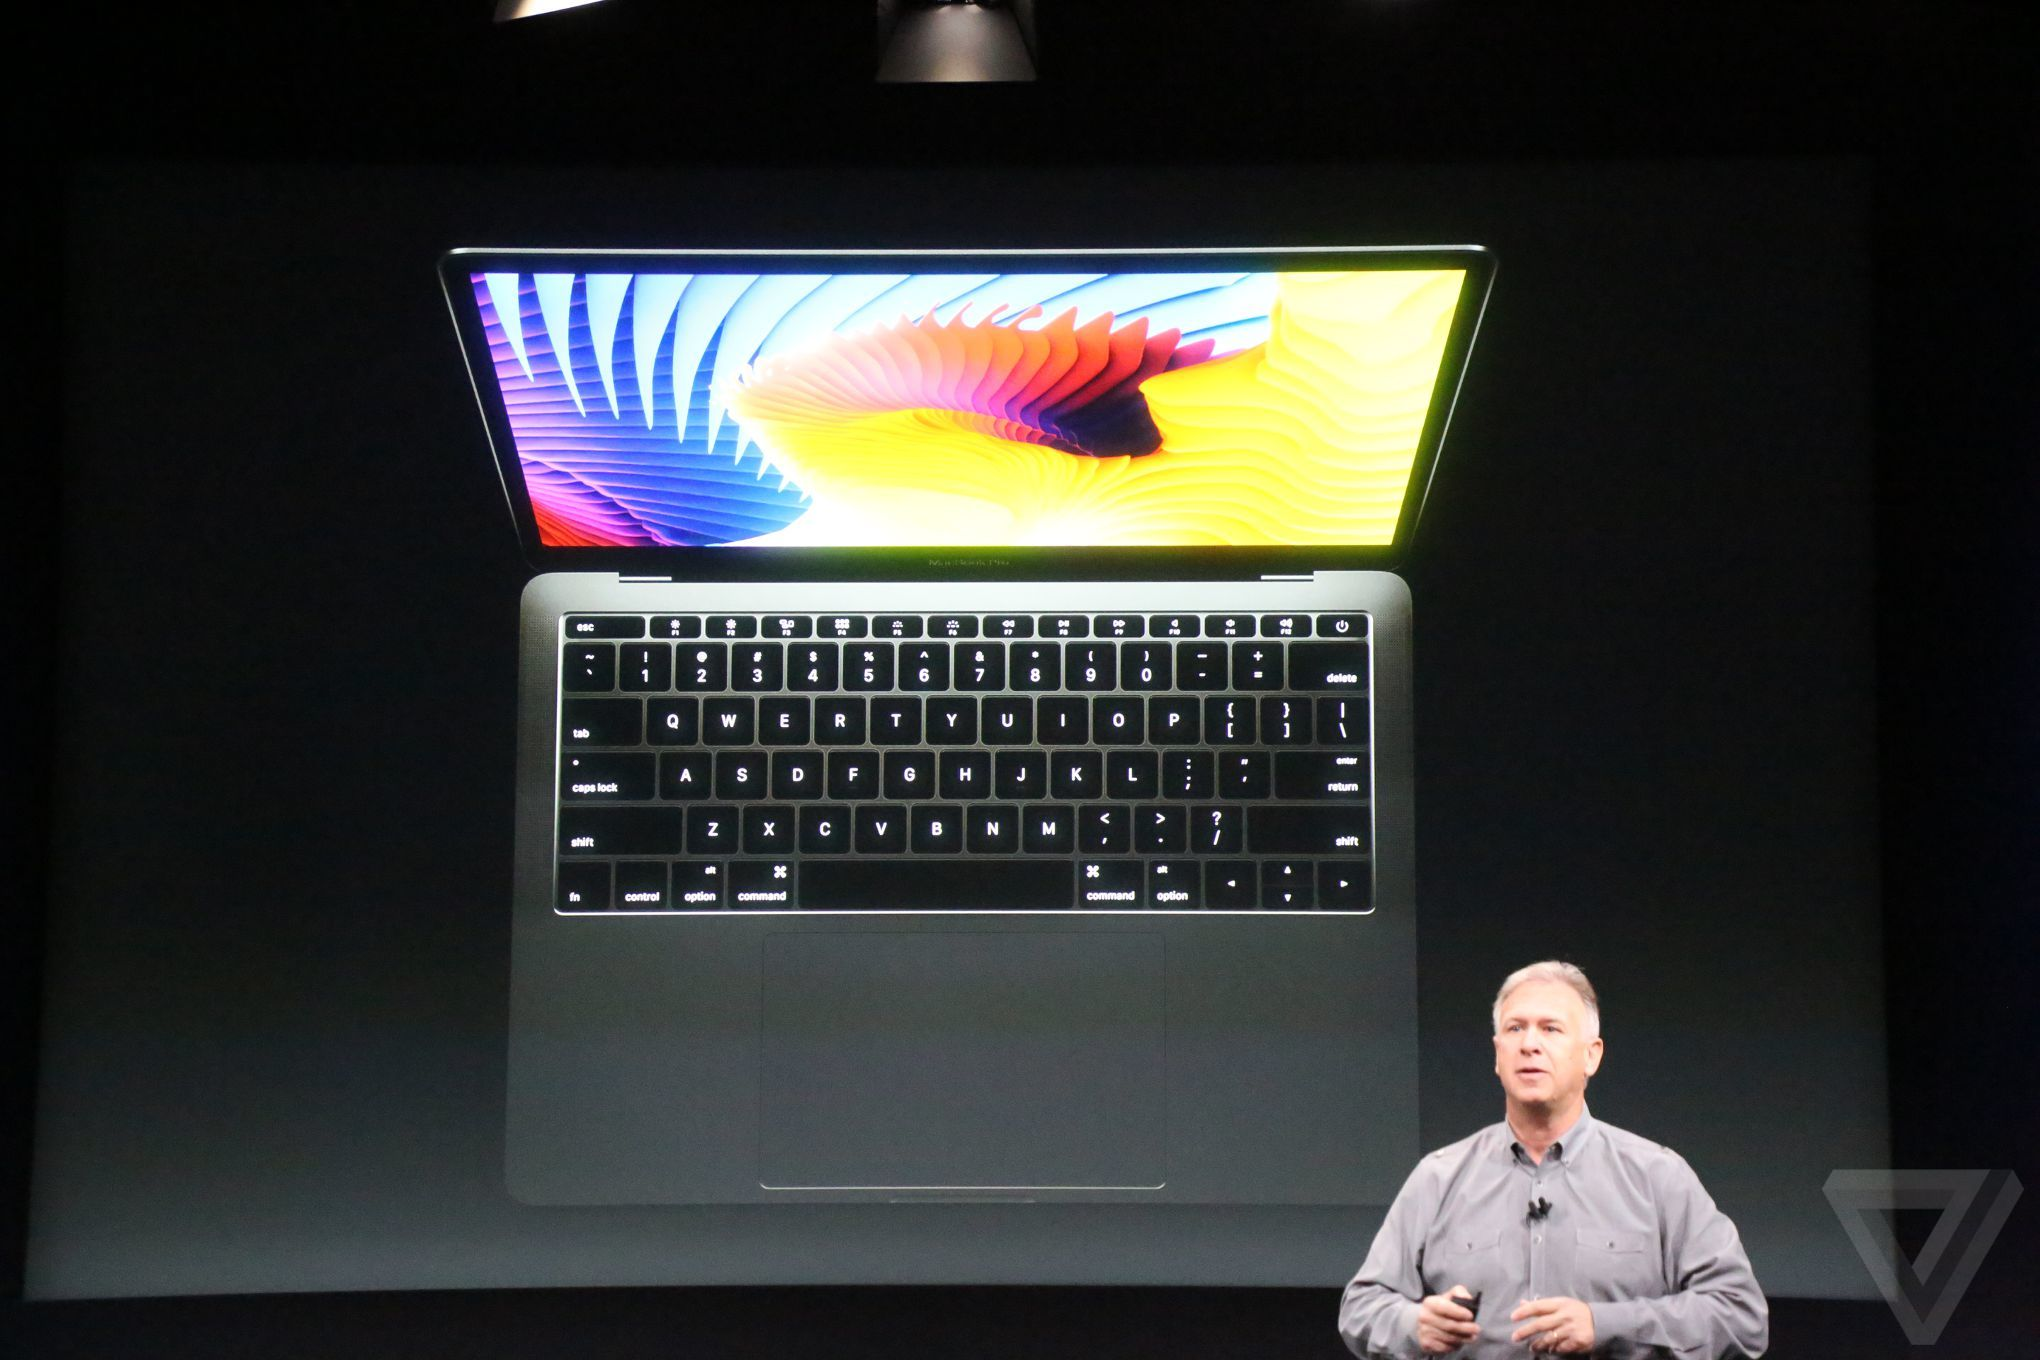 The 7 biggest announcements from Apple's MacBook event - The Verge